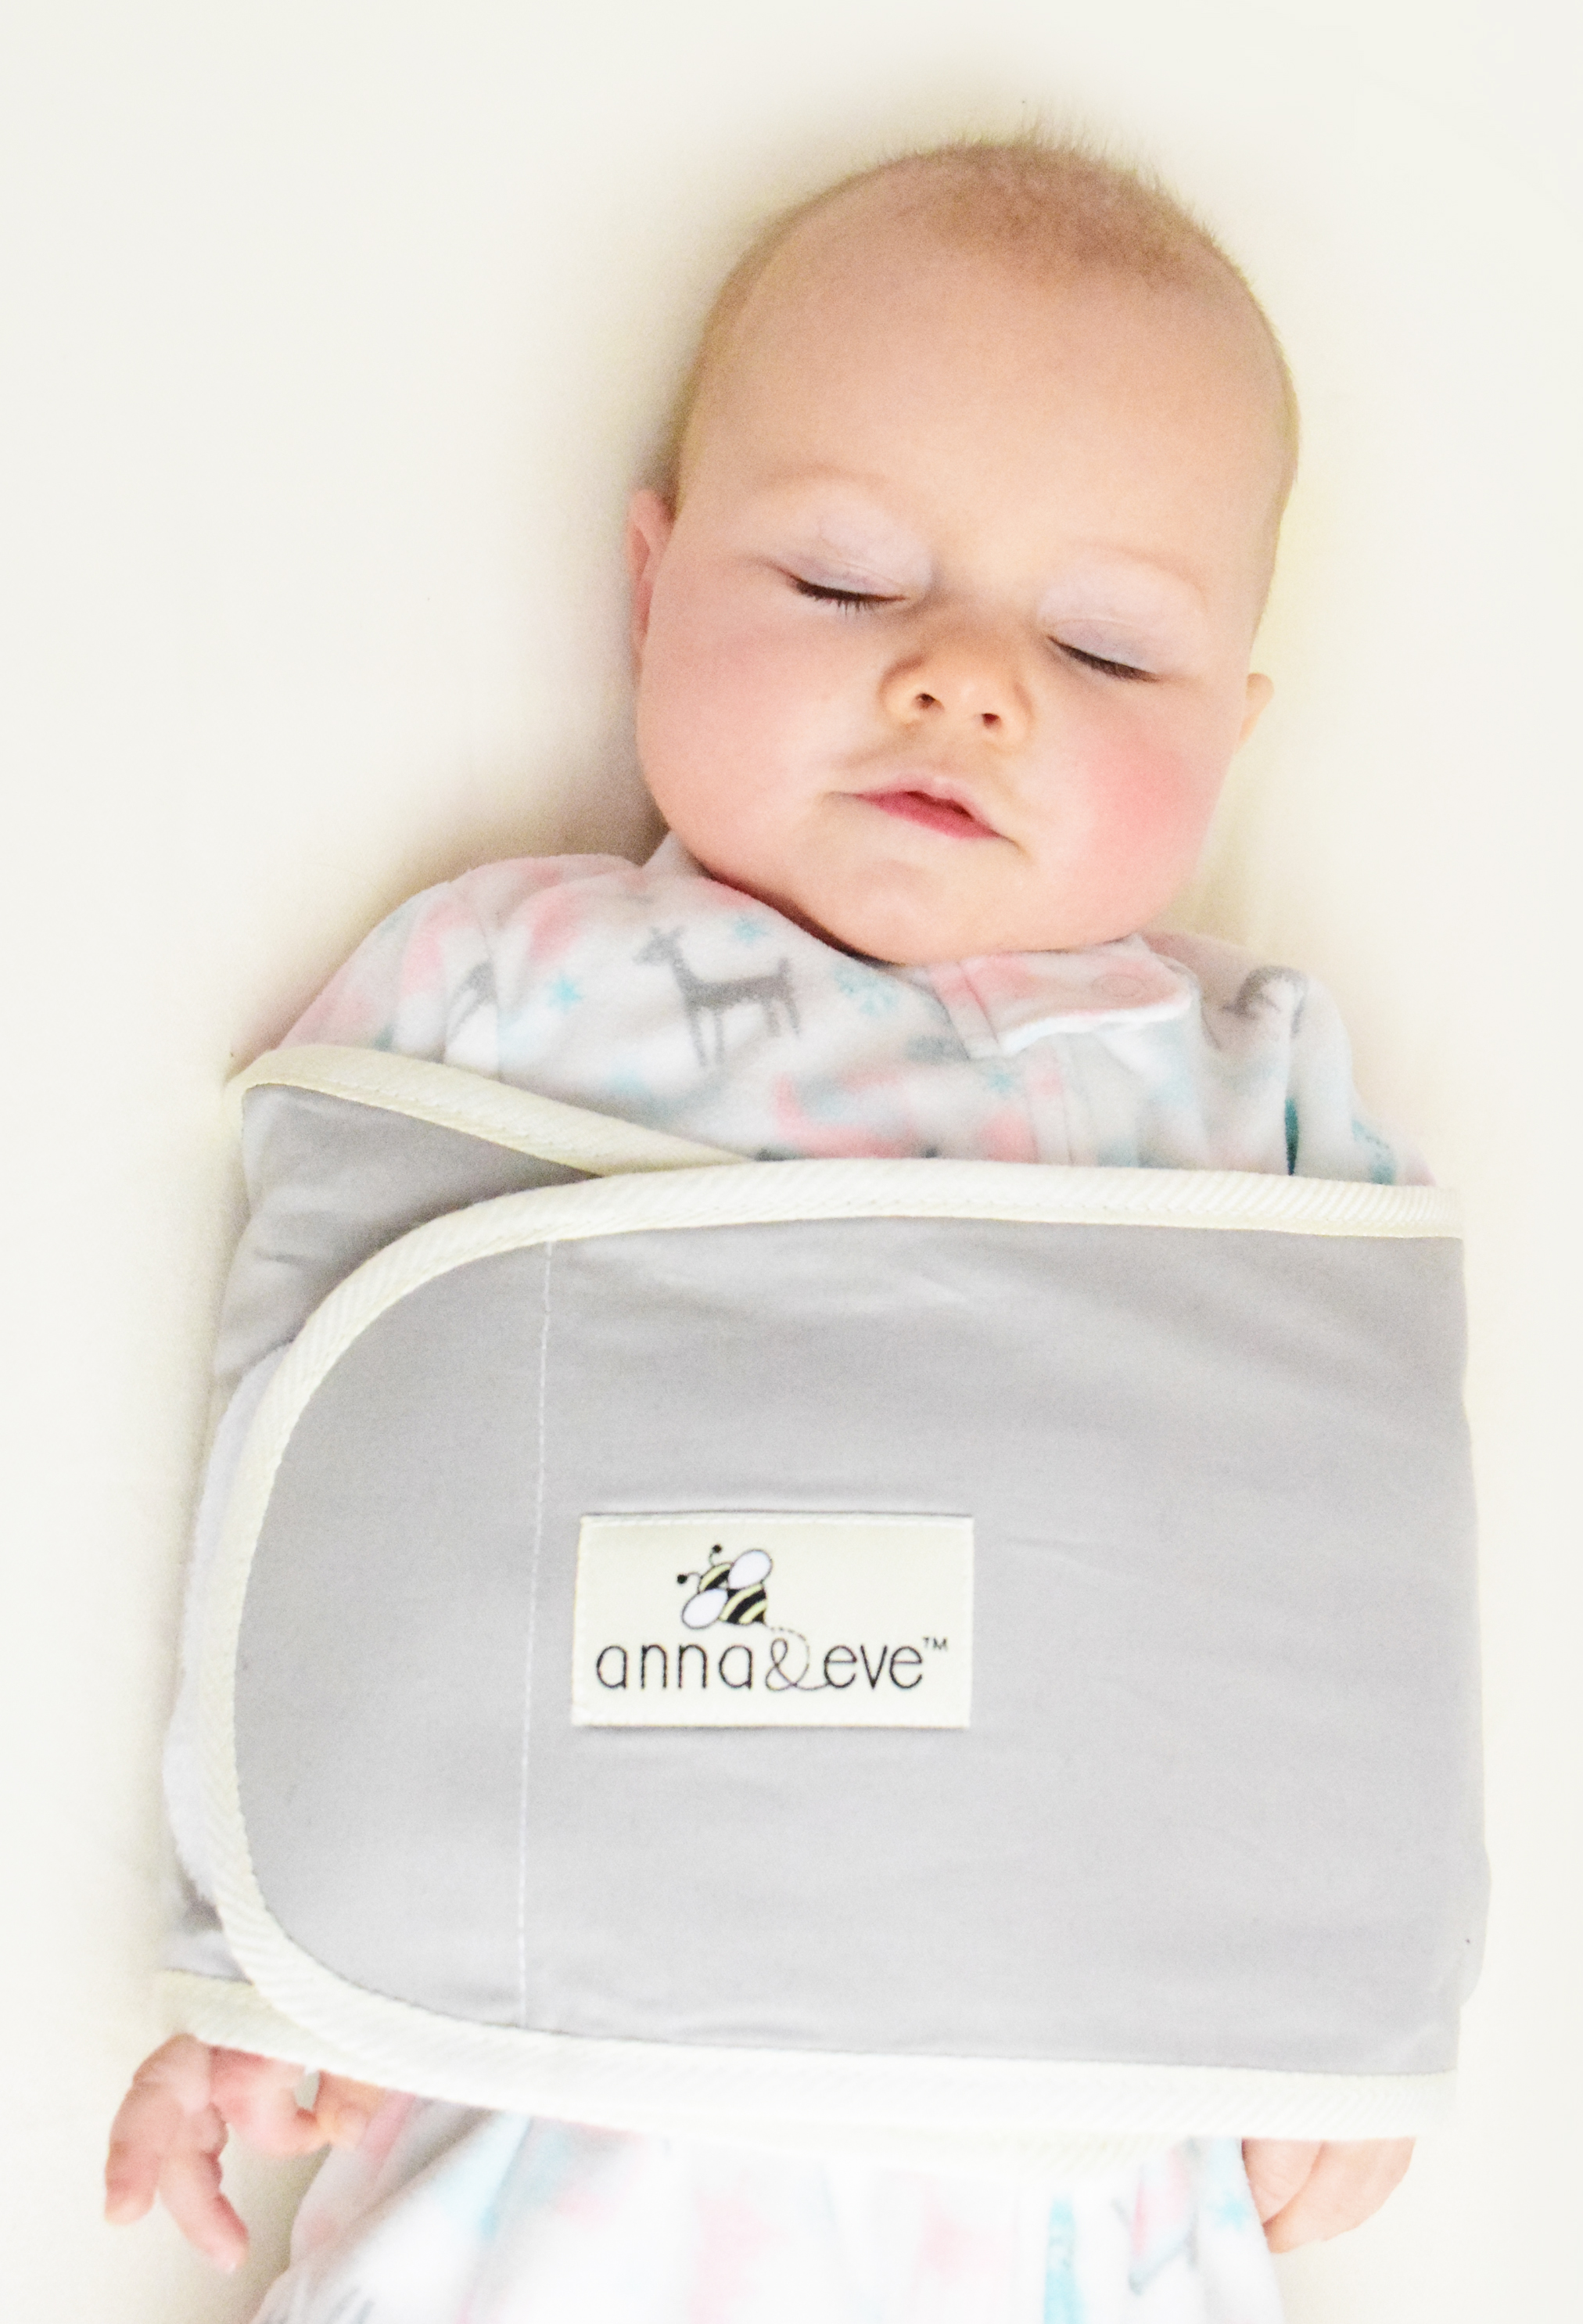 Anna Amp Eve Swaddle Strap Baby Swaddle The Lifechanger